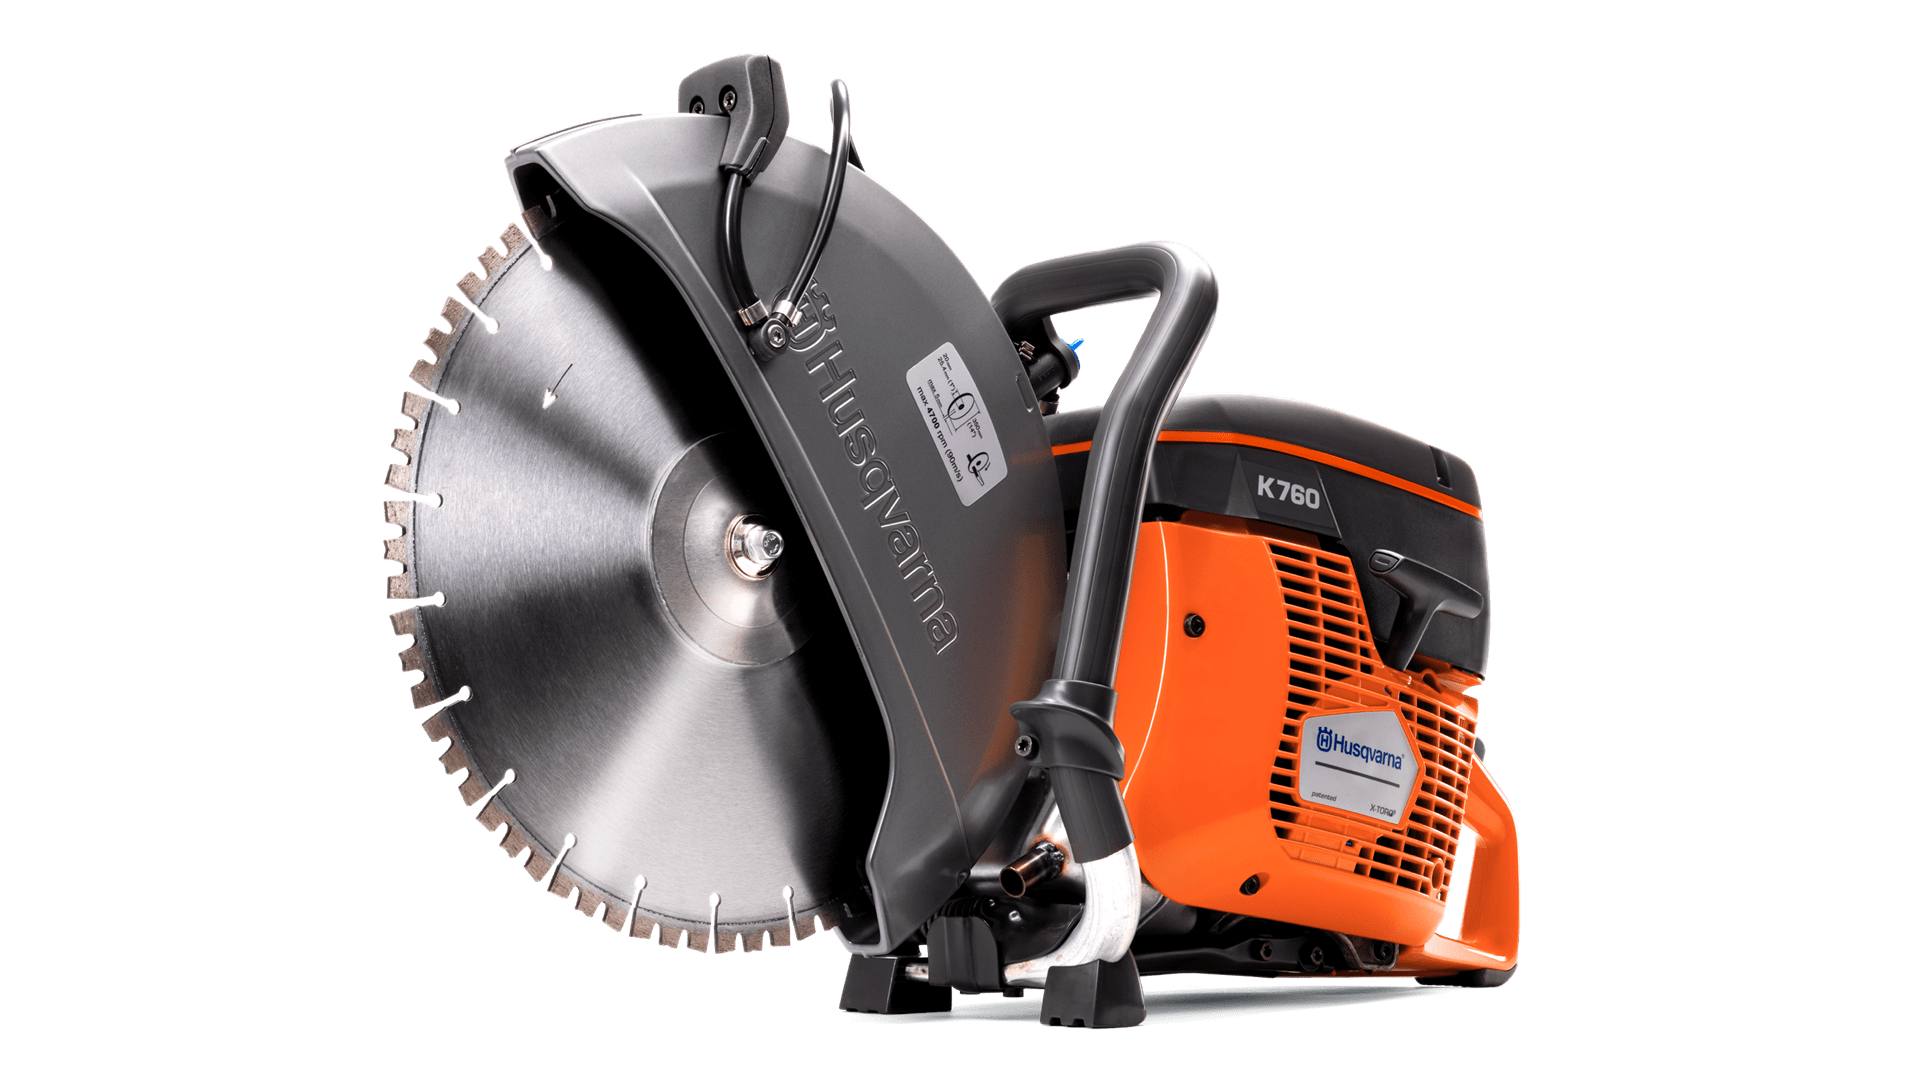 Handheld petrol cut-off concrete saw Husqvarna K 760 power cutter.